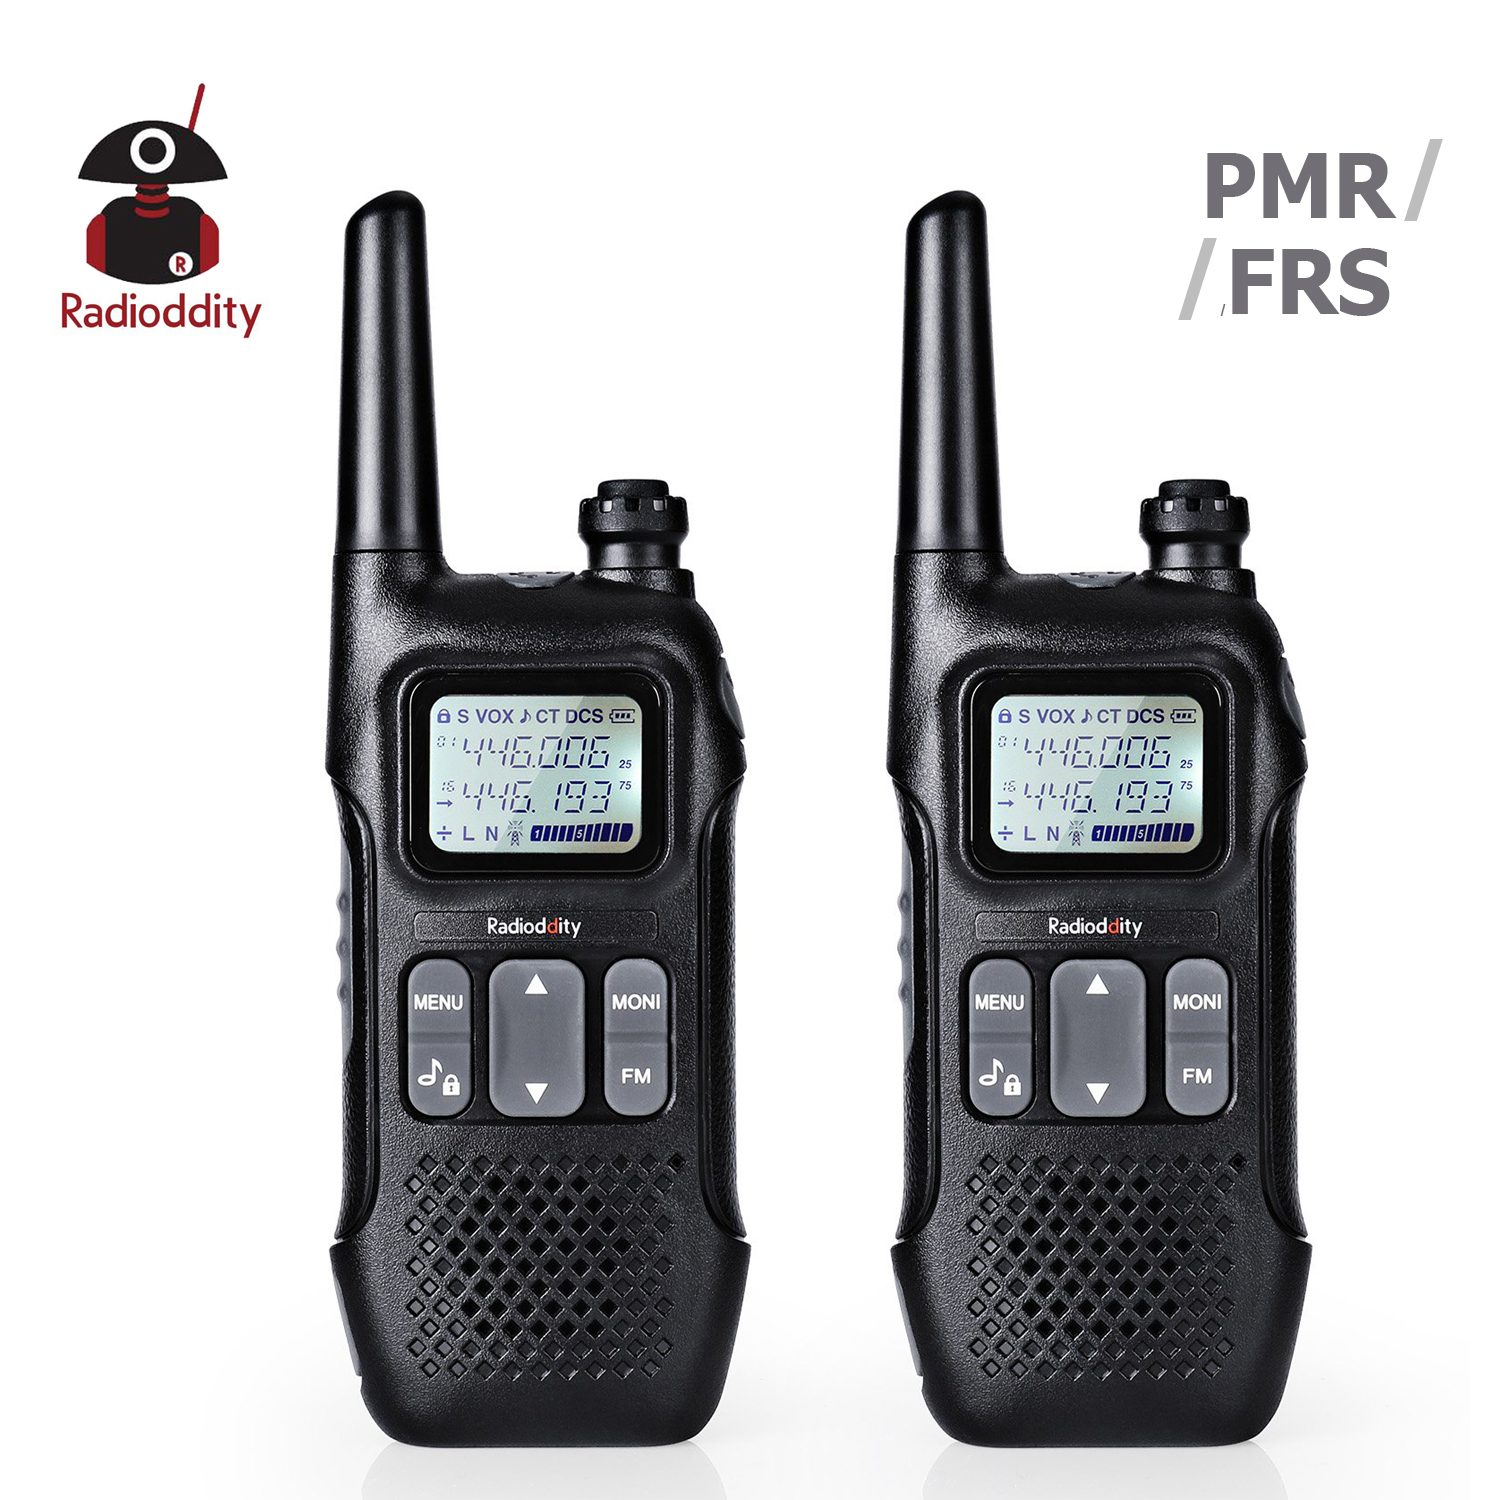 [2 PCS] Radioddity FS-T1 PR-T1 2W FRS PMR Two-Way Radio License-Free Walkie Talkies 22CH with NOAA Weather Alert FM USB Charging